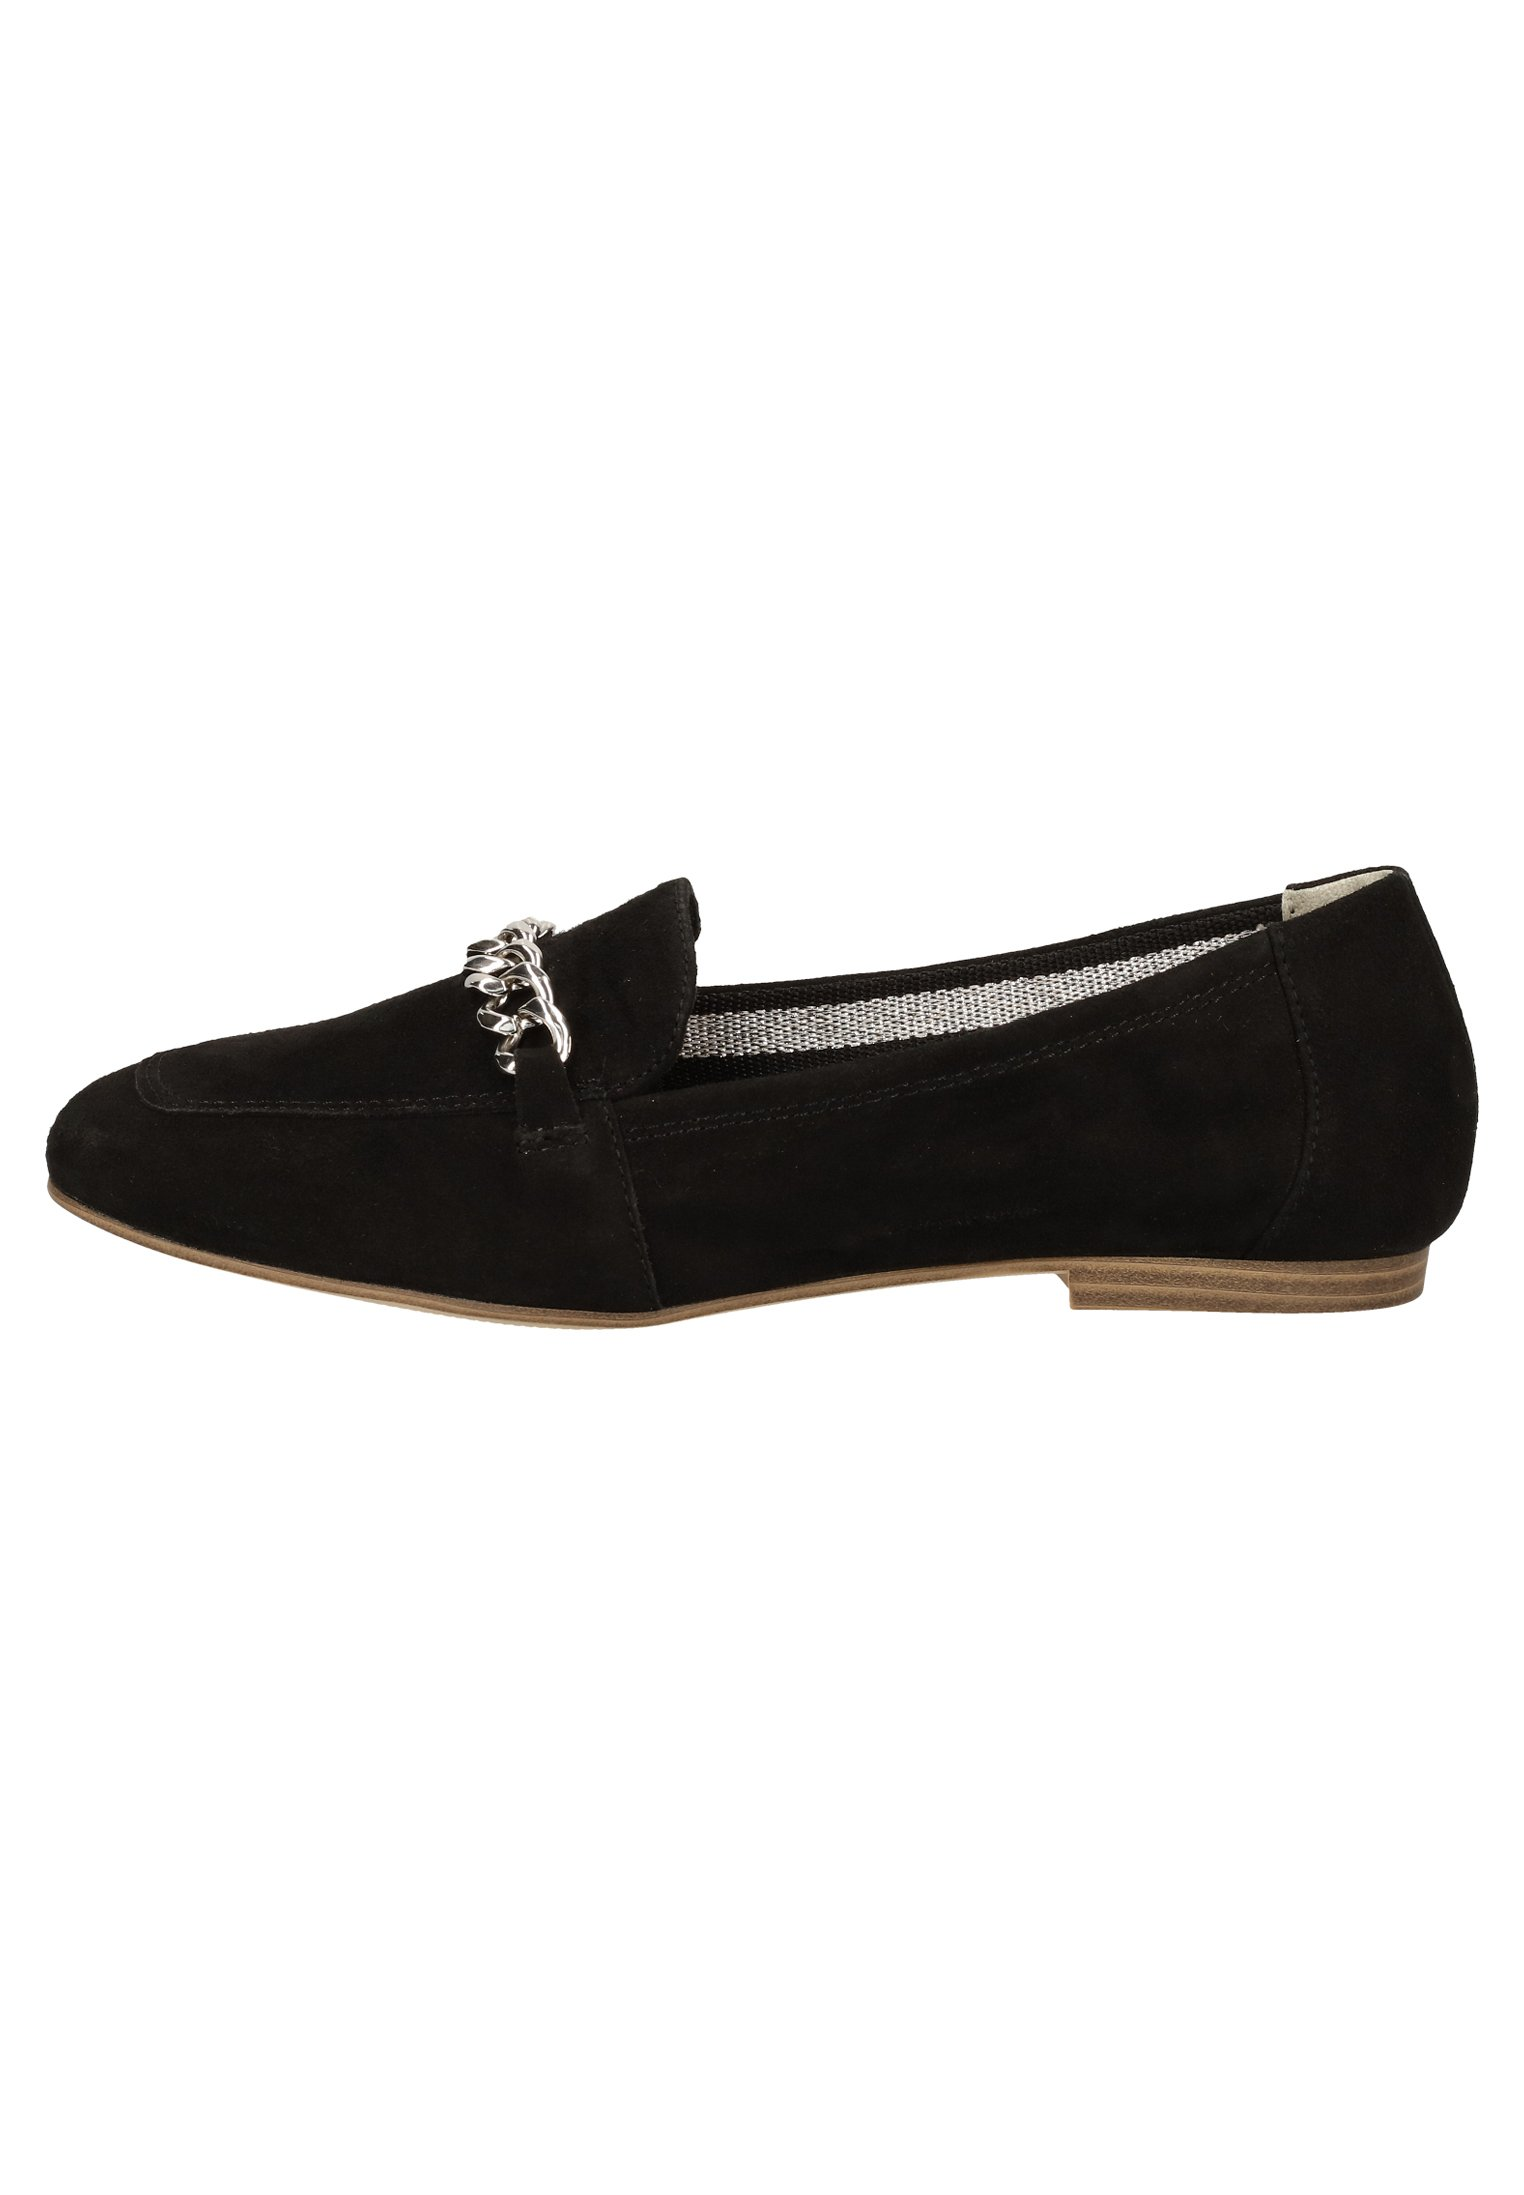 S.OLIVER BLACK LABEL Slip ins black